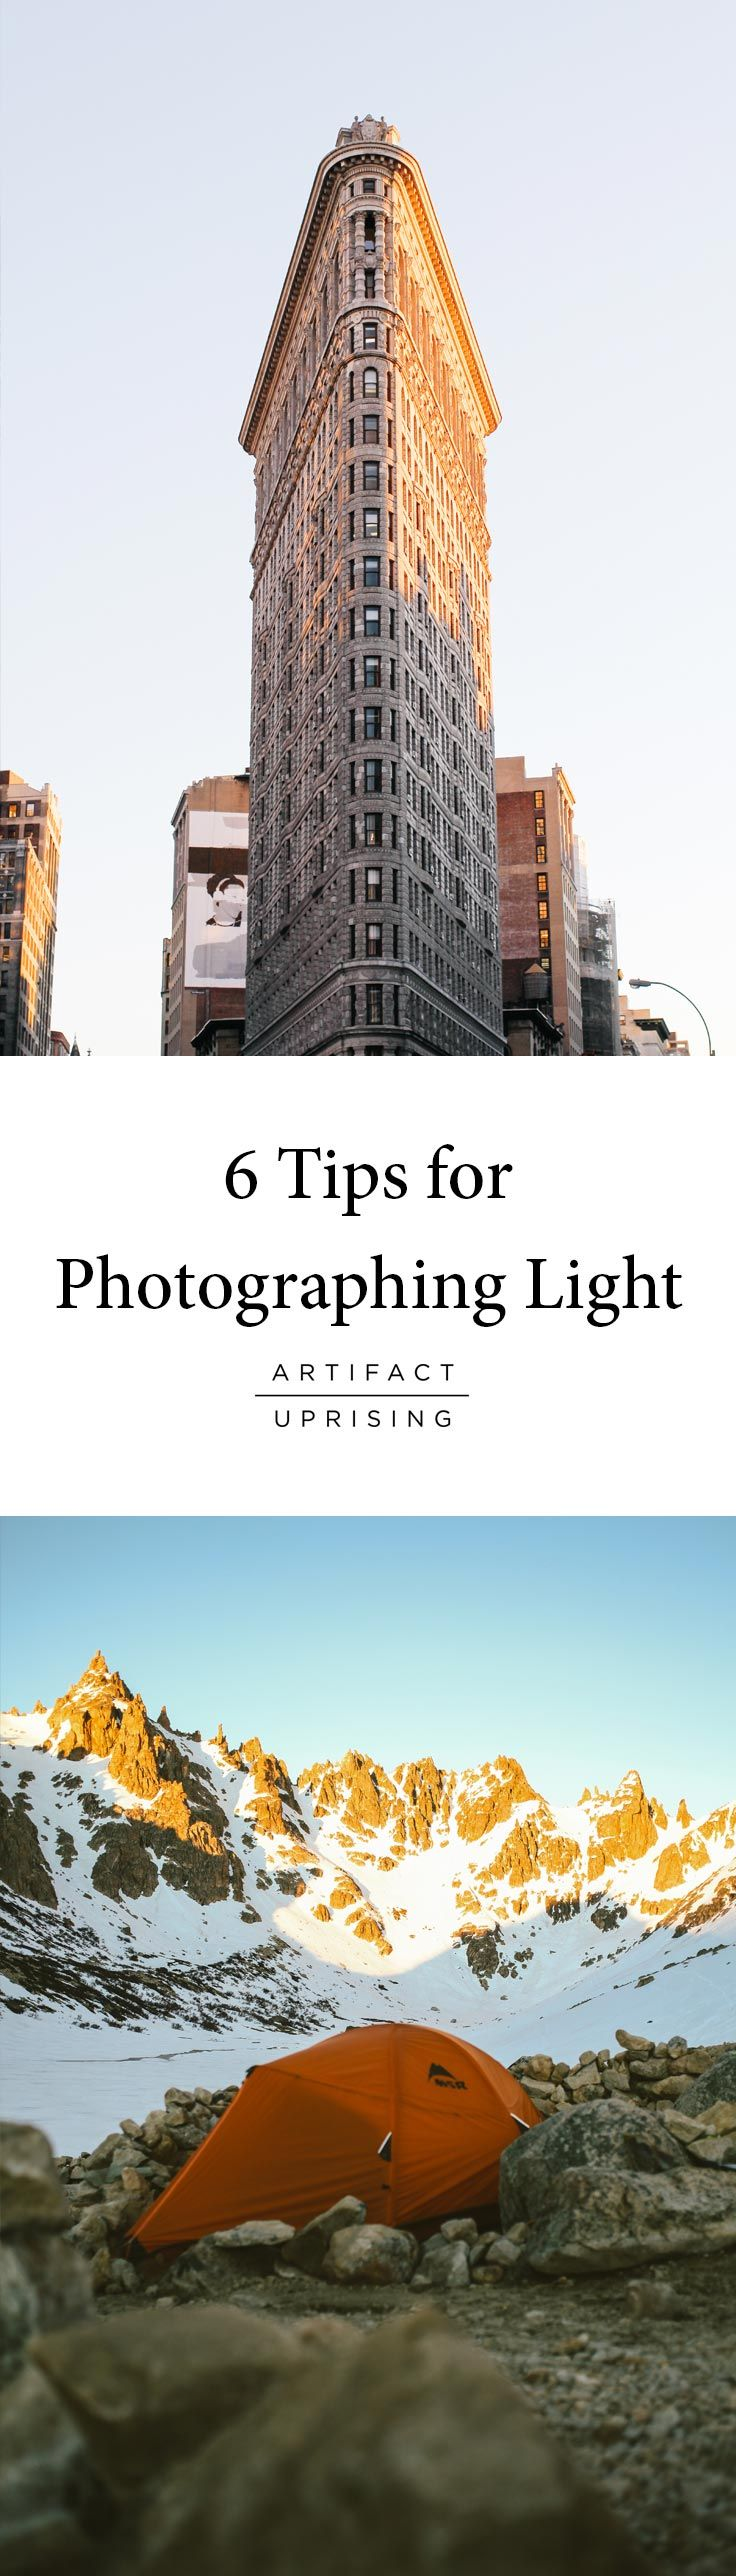 Working What What You Are Given: 6 Tips for Photographing Light with Matthew Payne X @artifactuprsng   After borrowing a friend's camera in Slovenia 5 years ago, Matthew Payne set out to travel over 50 countries and hasn't put the camera down since. Follow along as Matthew shares some insider tips to capture light no matter where the course leads.